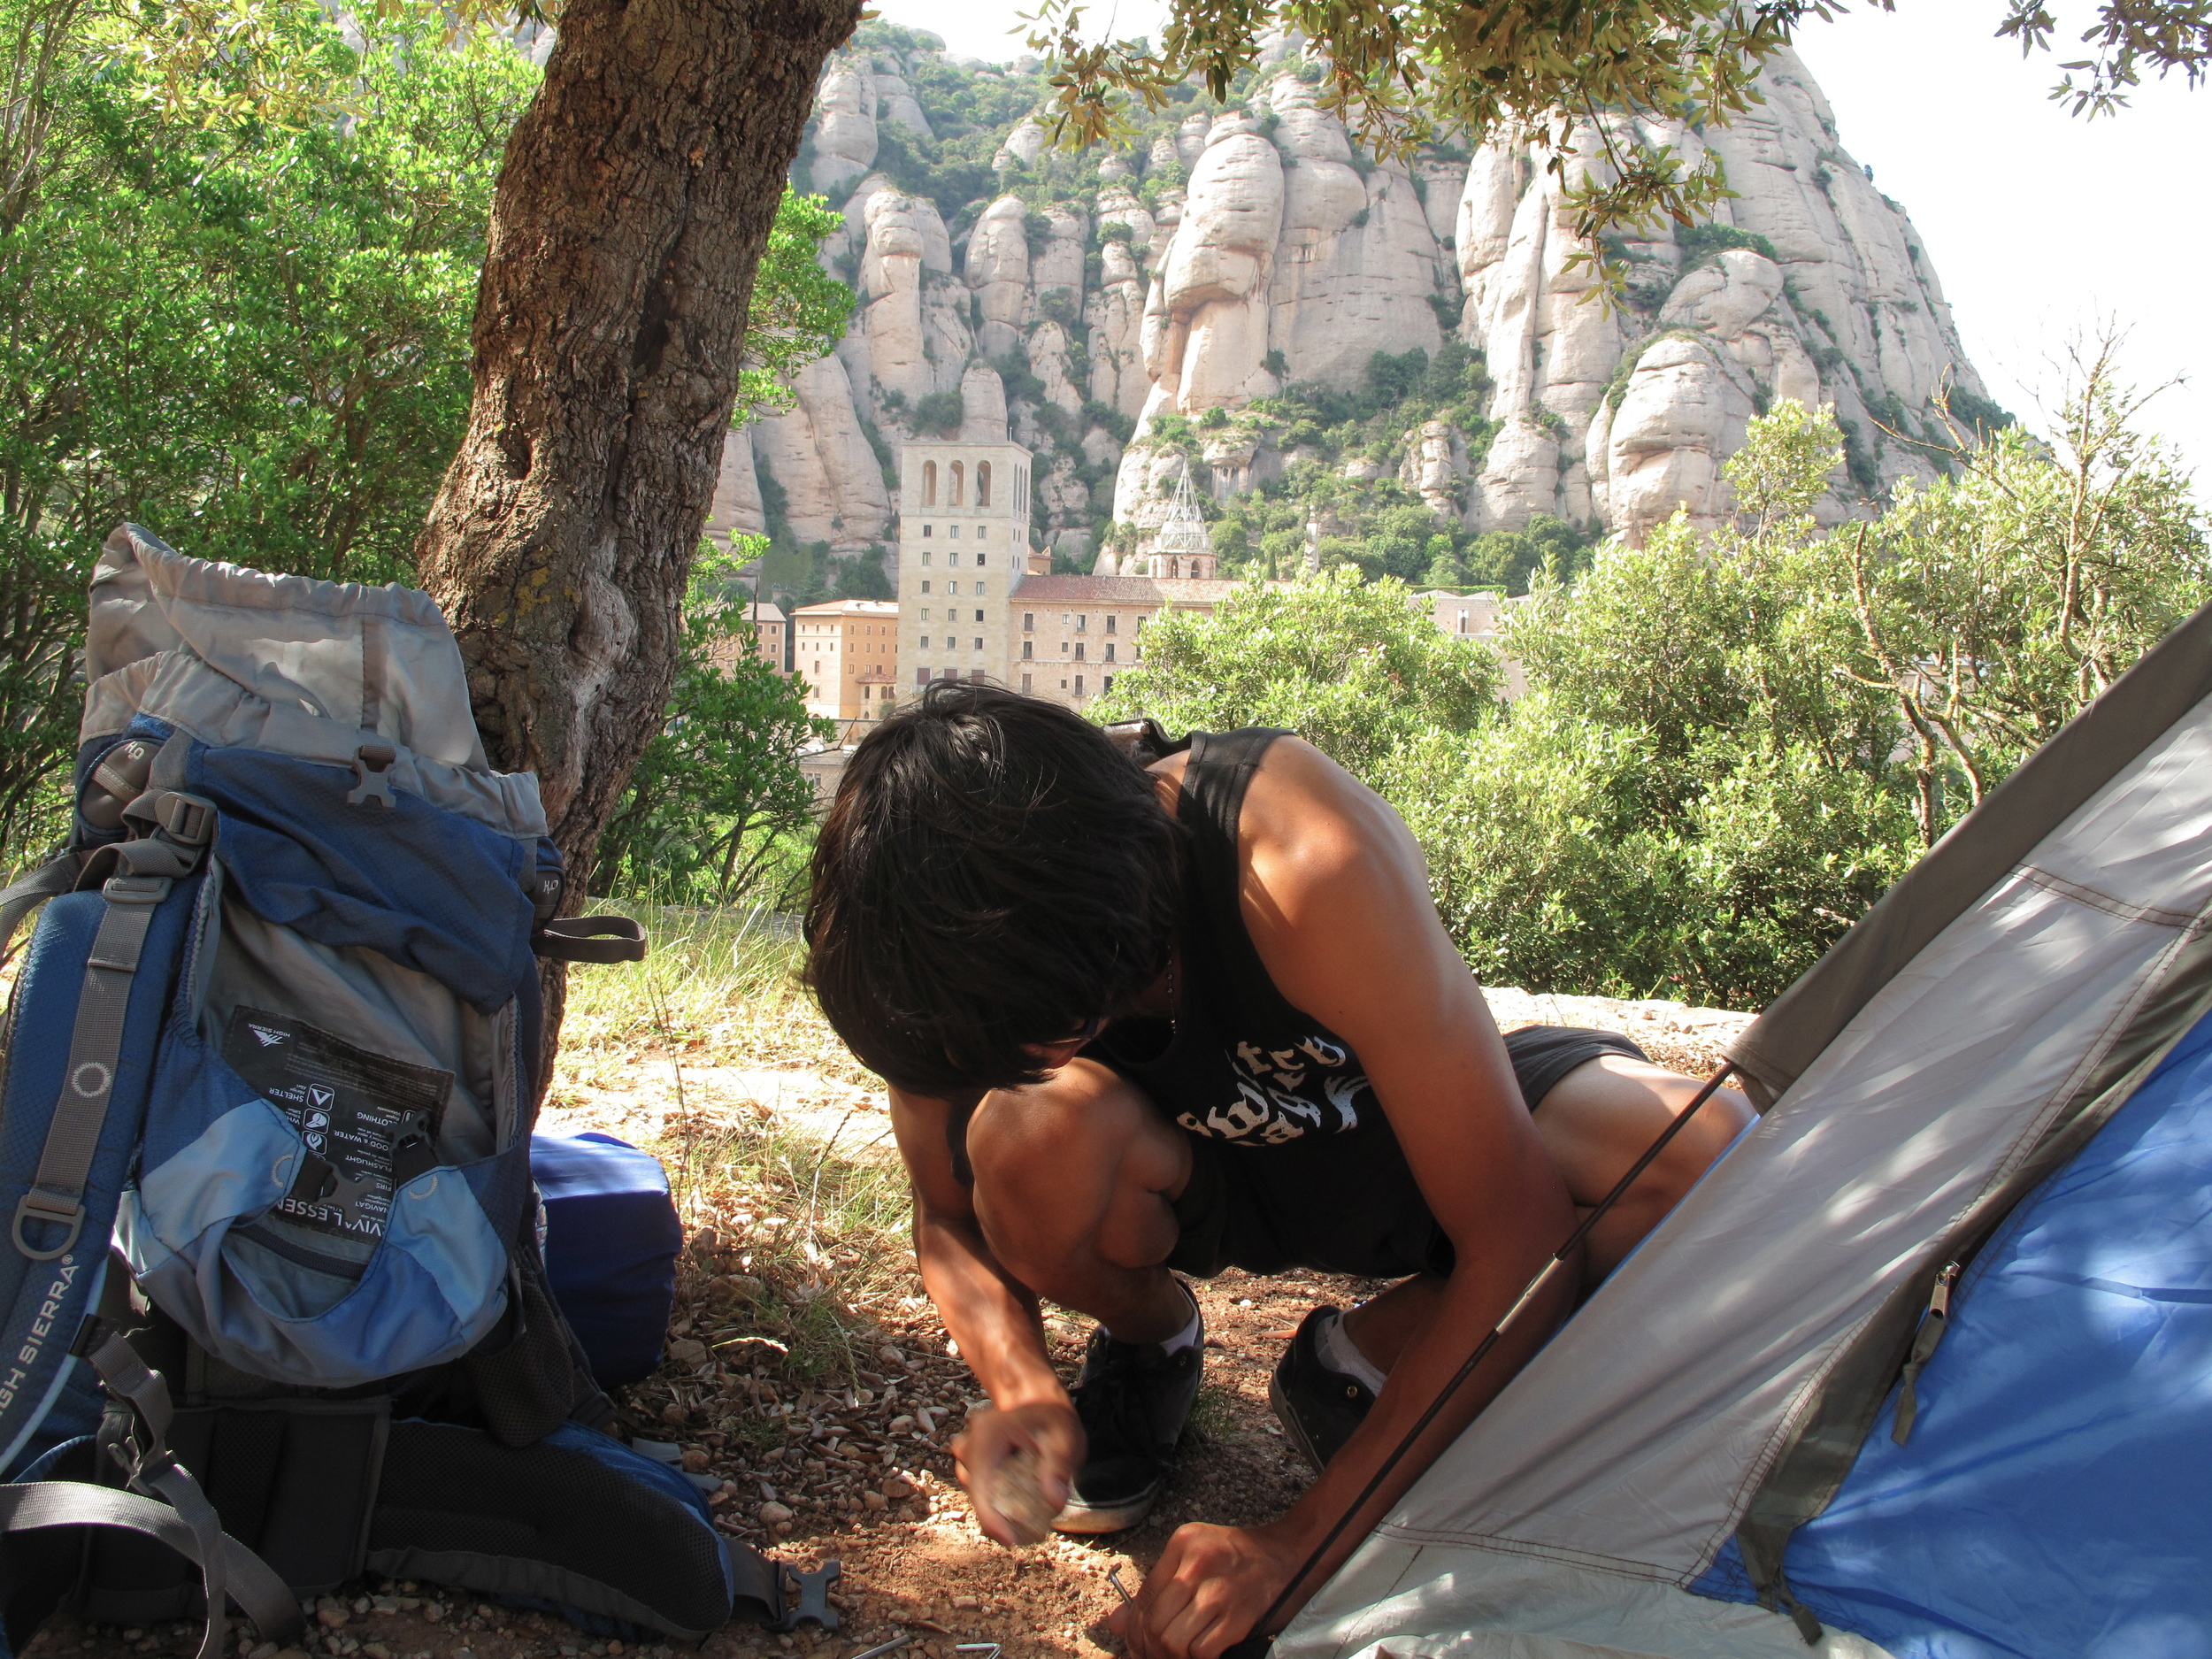 Setting up a tent at the campsite on Montserrat